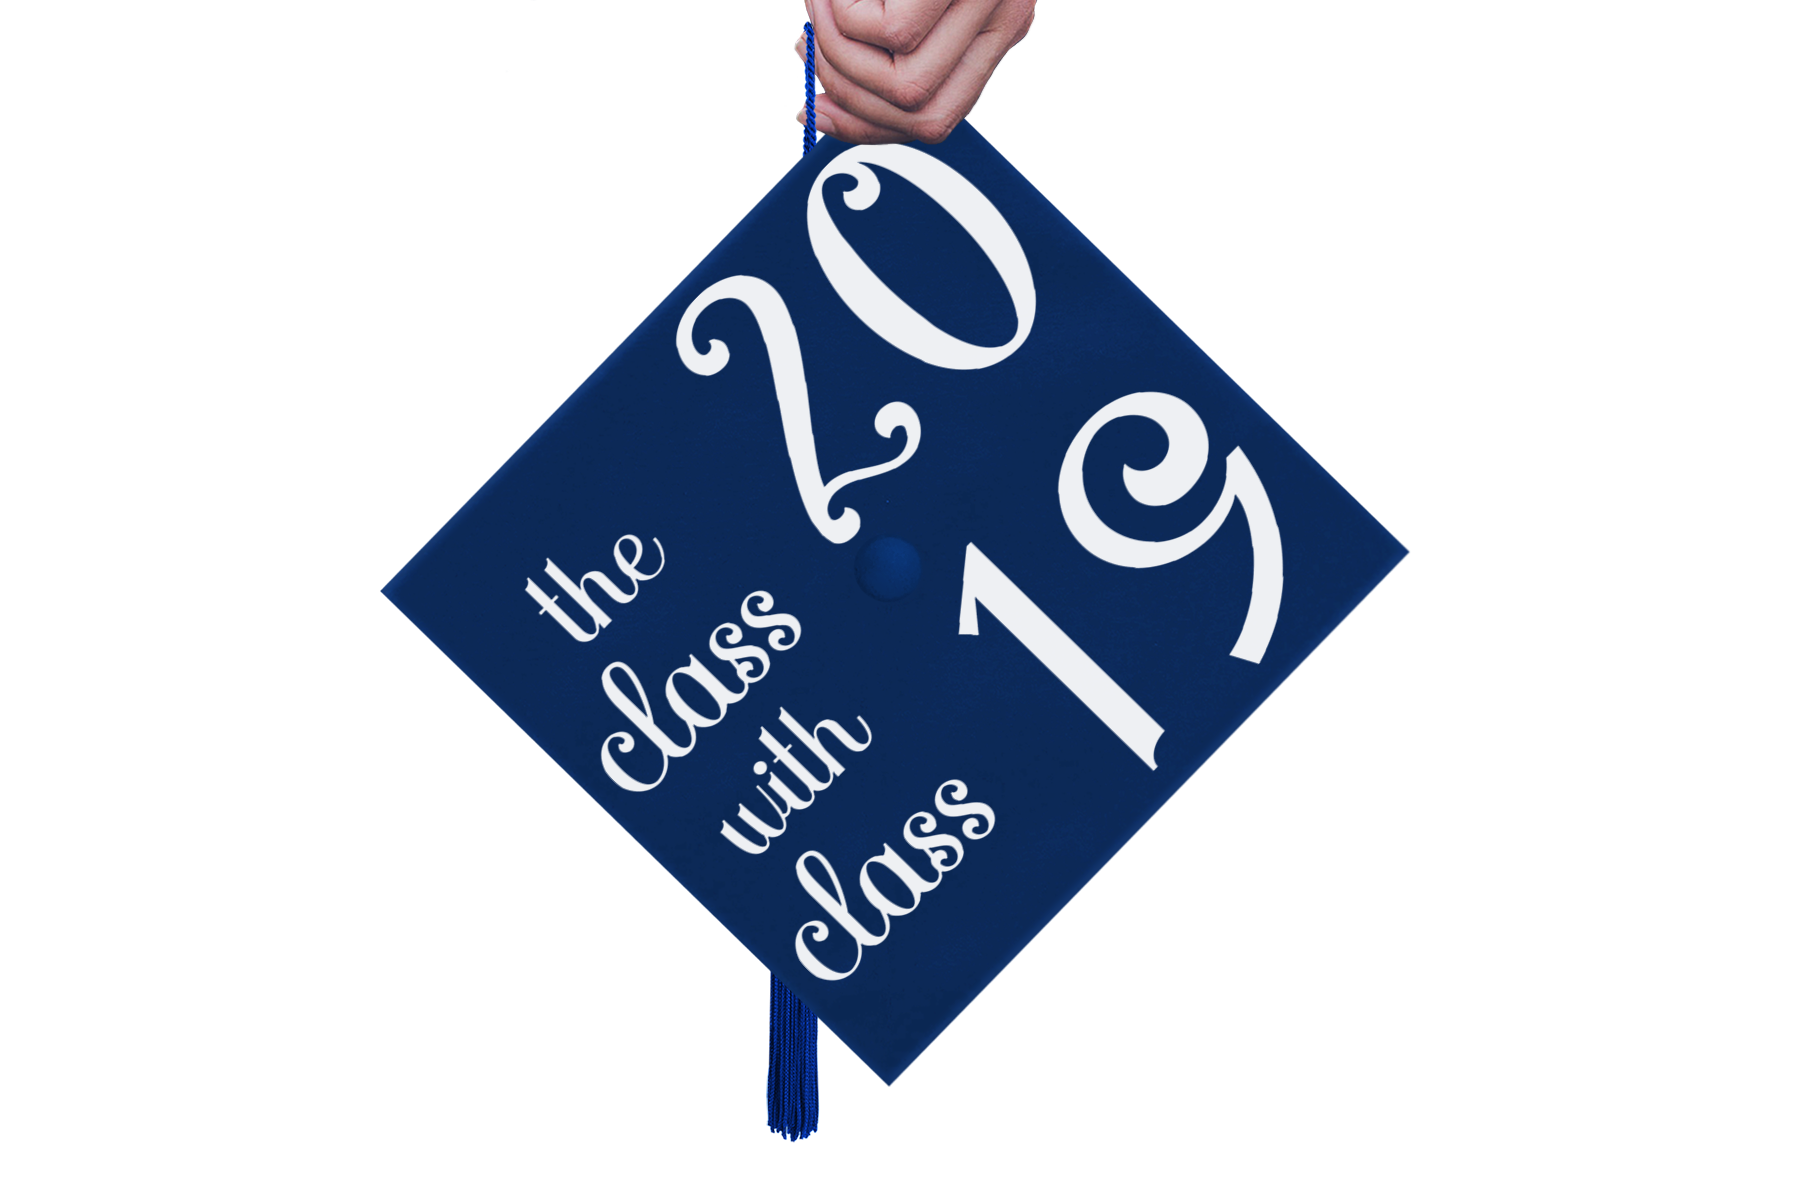 The Class with Class 2019 Grad Cap Design - A Graduation Hat example image 3